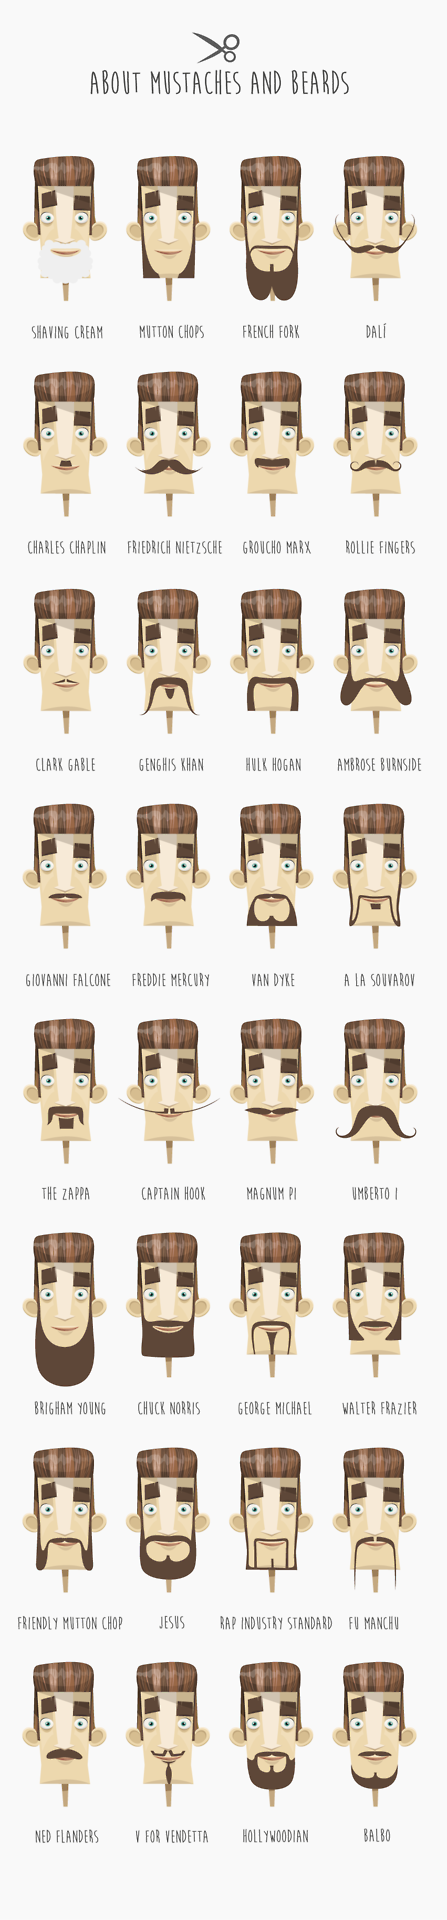 Guide about mustaches and beards